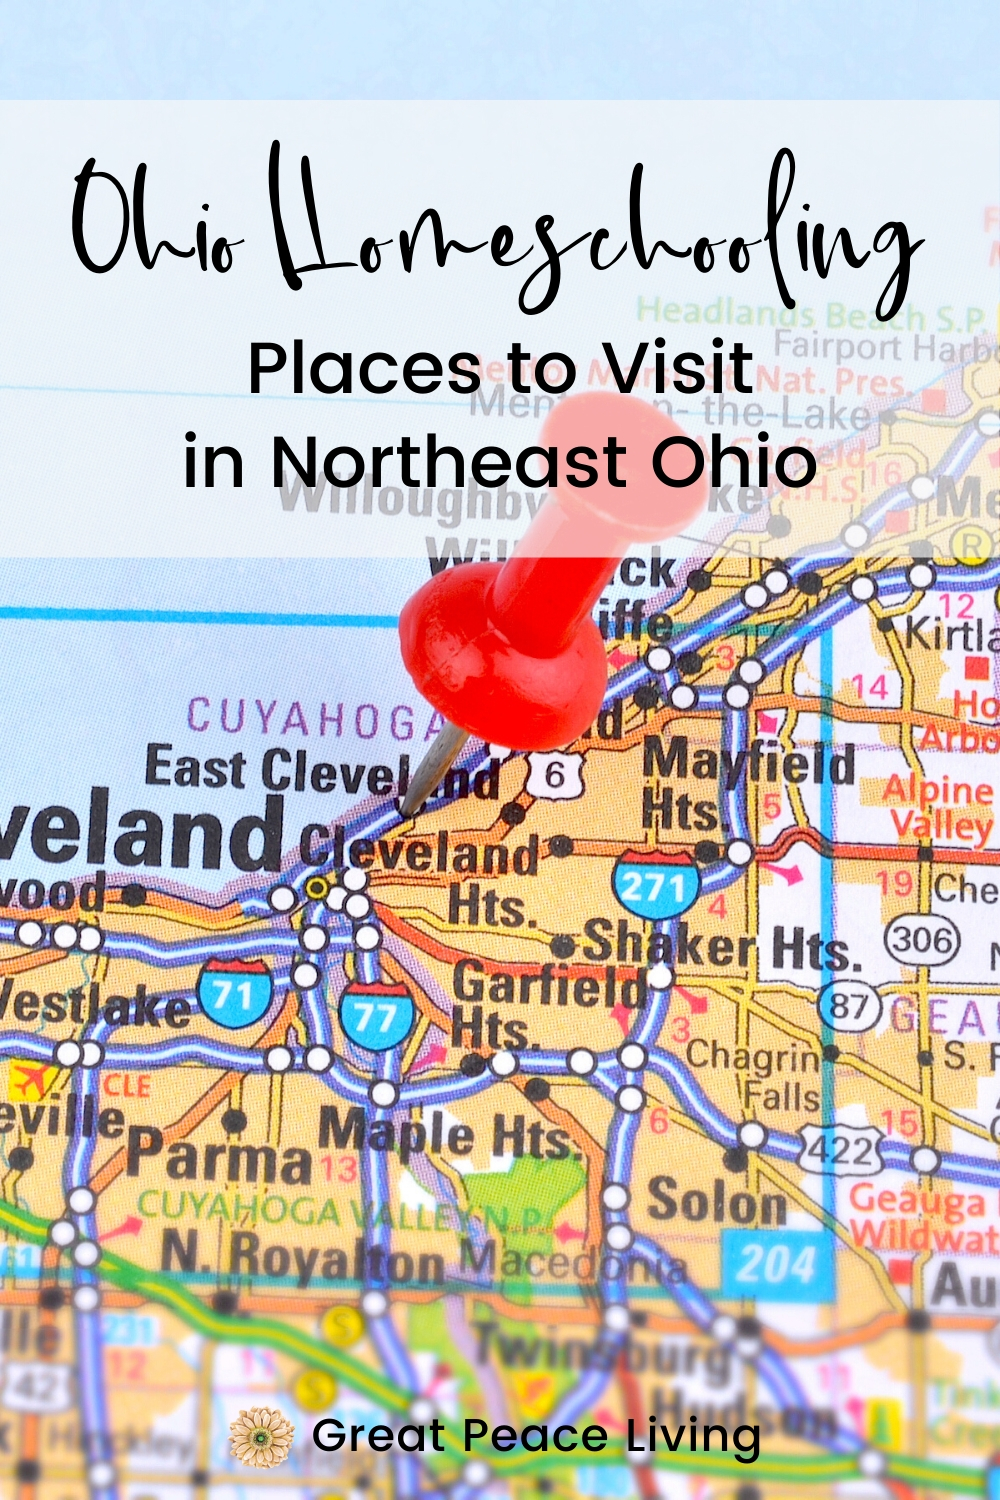 Places to Visit in Northeast Ohio  | Great Peace Living #ohiohomeschooling #homeschool #ihsnet